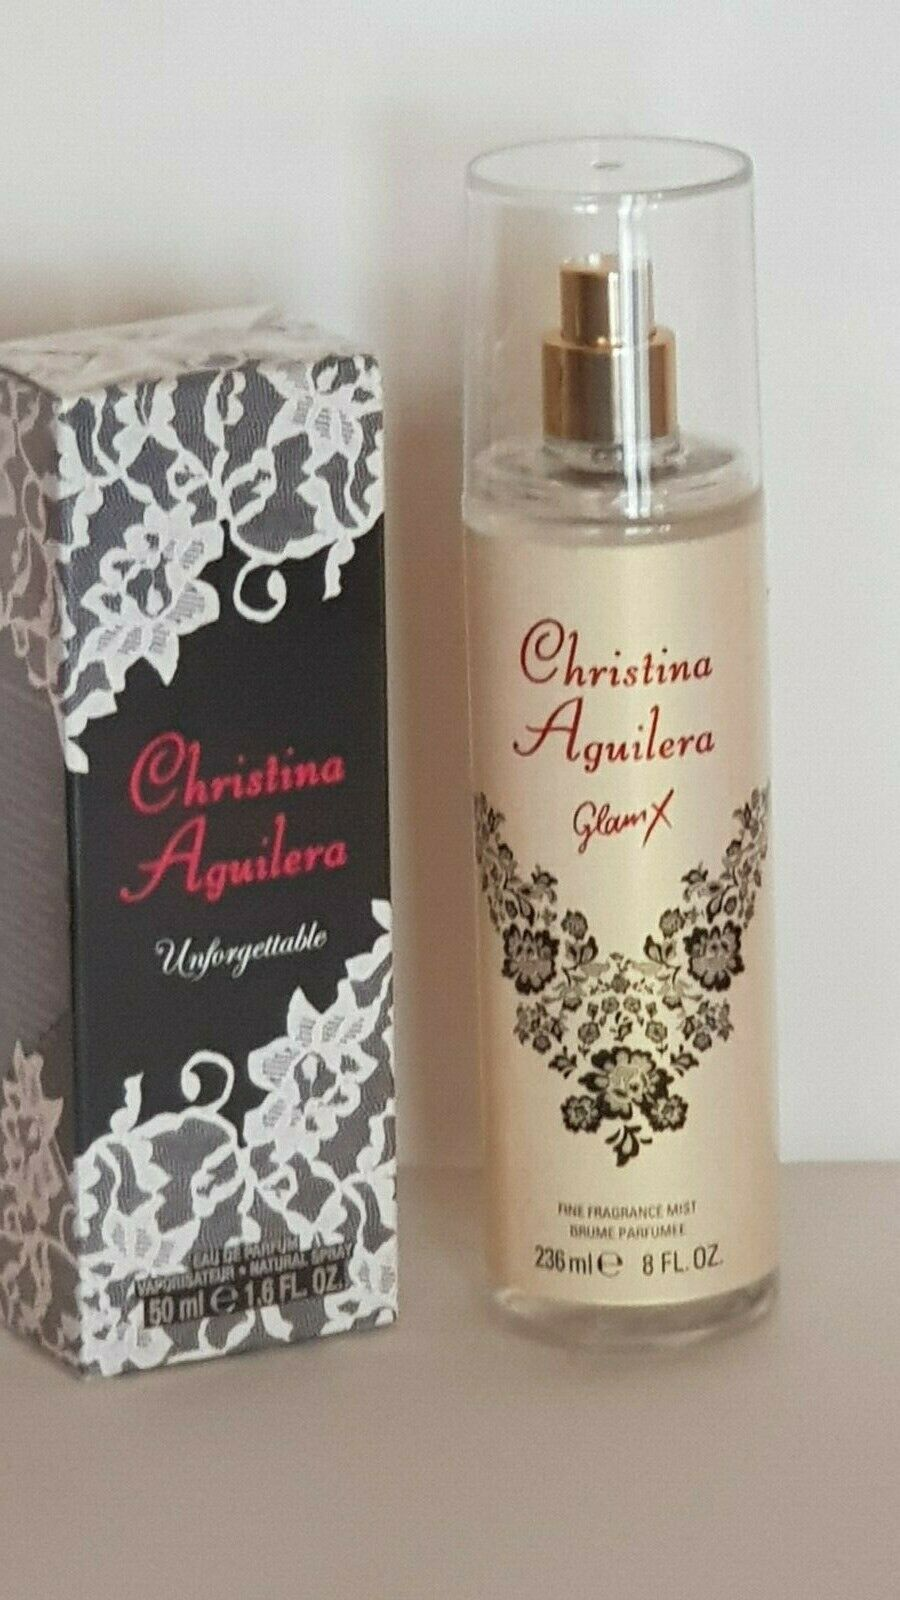 CHRISTINA AGUILERA SET X 2 ITEMS (UNFORGETTABLE EDP SP 50 ml.+GLAM X MIST) NEW